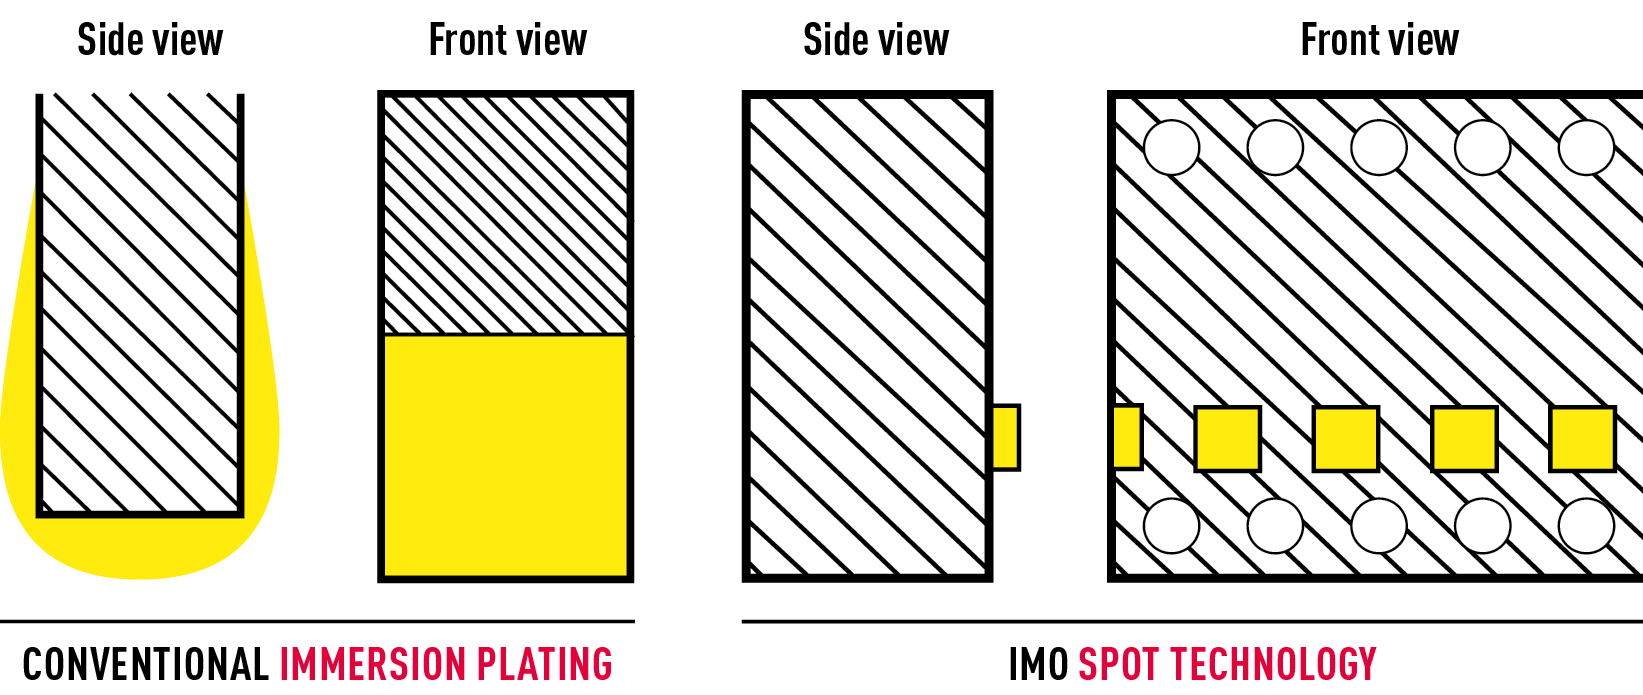 IMO spot technology comparison graphics